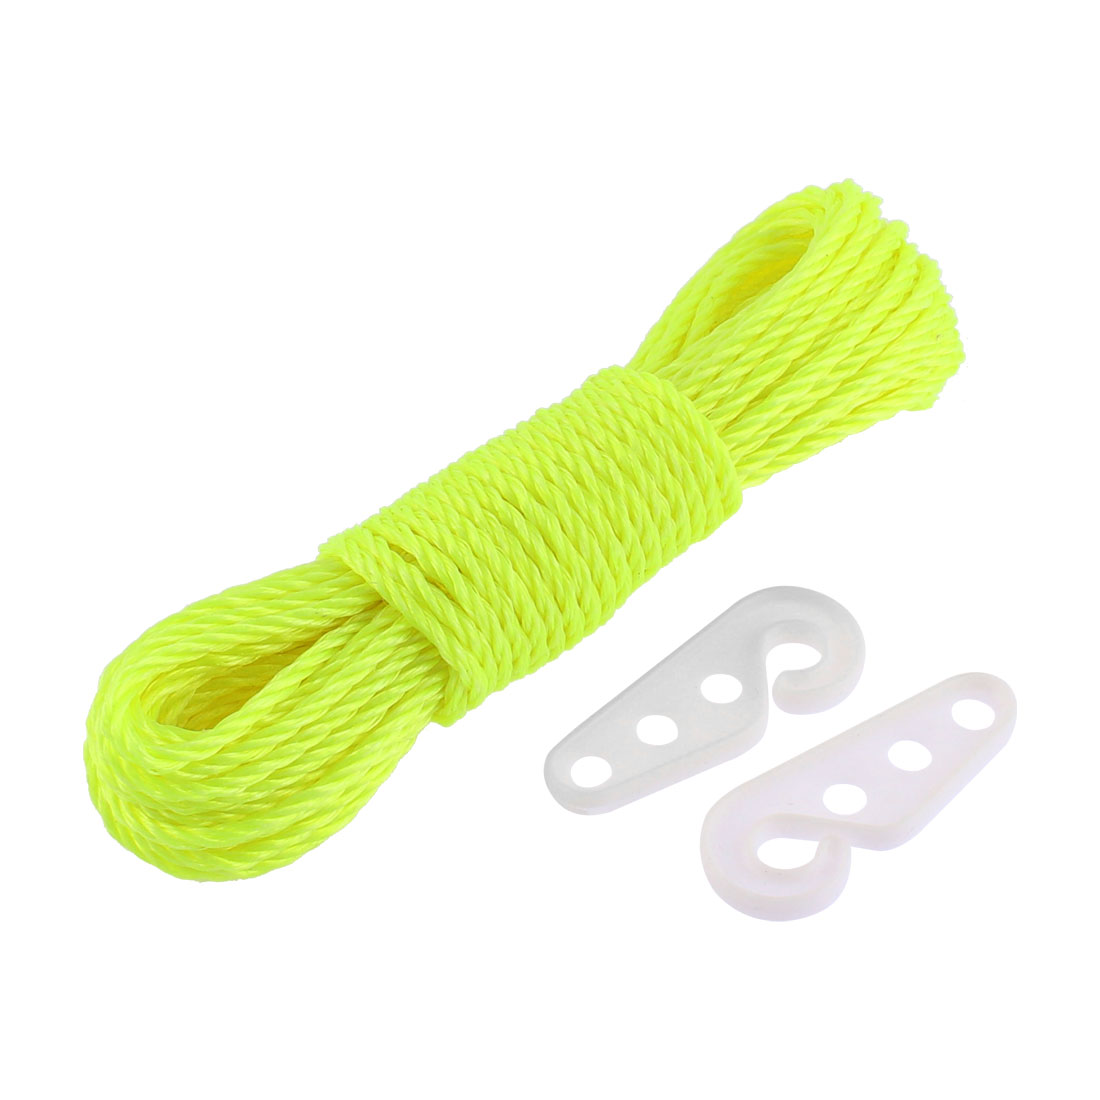 Outdoor Nylon Clothesline Clothes Rope 10M 33Ft Long Yellow